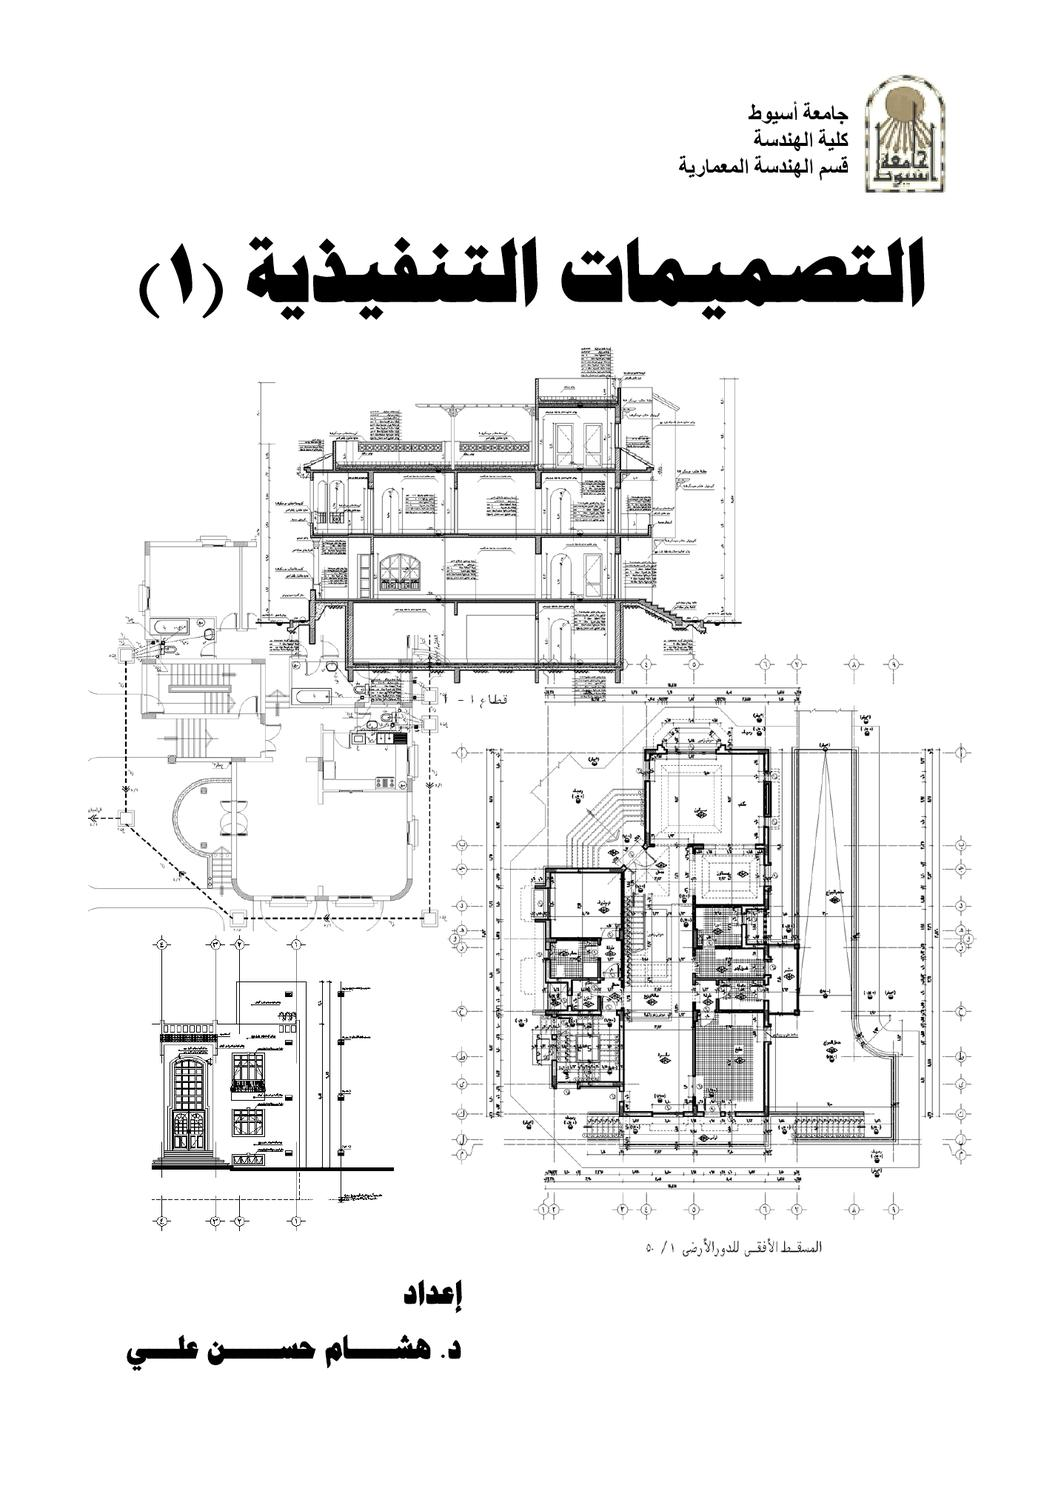 You Are Invited together with Deluxe Room also Stock Illustration Pictograms Families Houses White Background Image46101919 furthermore Murphyhomesal wordpress furthermore 2 Single Bedroom Apartment Designs Under 75 Square Meters With Floor Plans. on family home plans